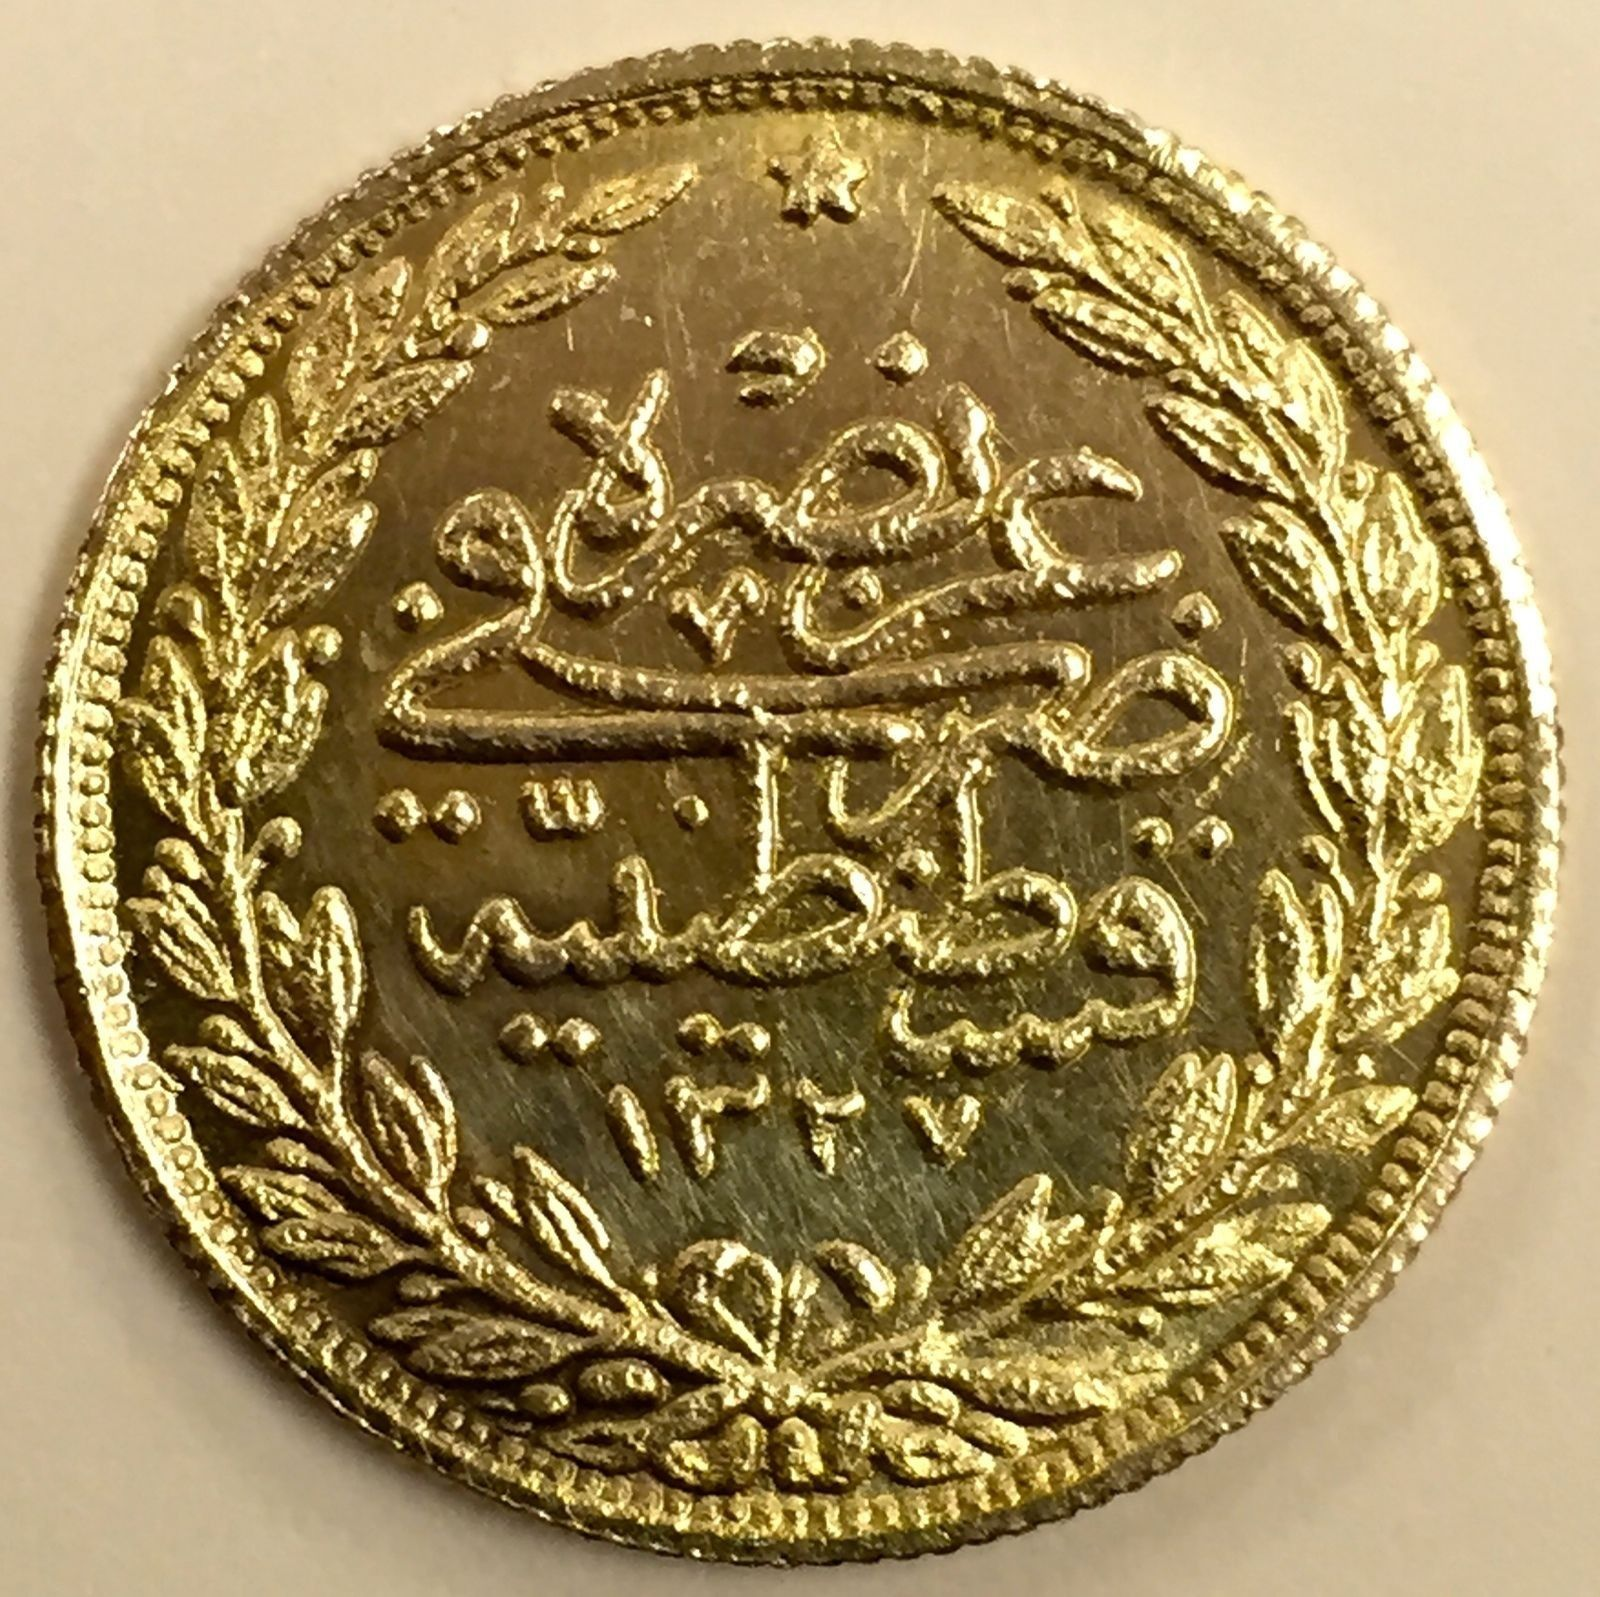 Ottoman Empire, 100 Kurush Gold coin AH1327/7 minted in Turkey